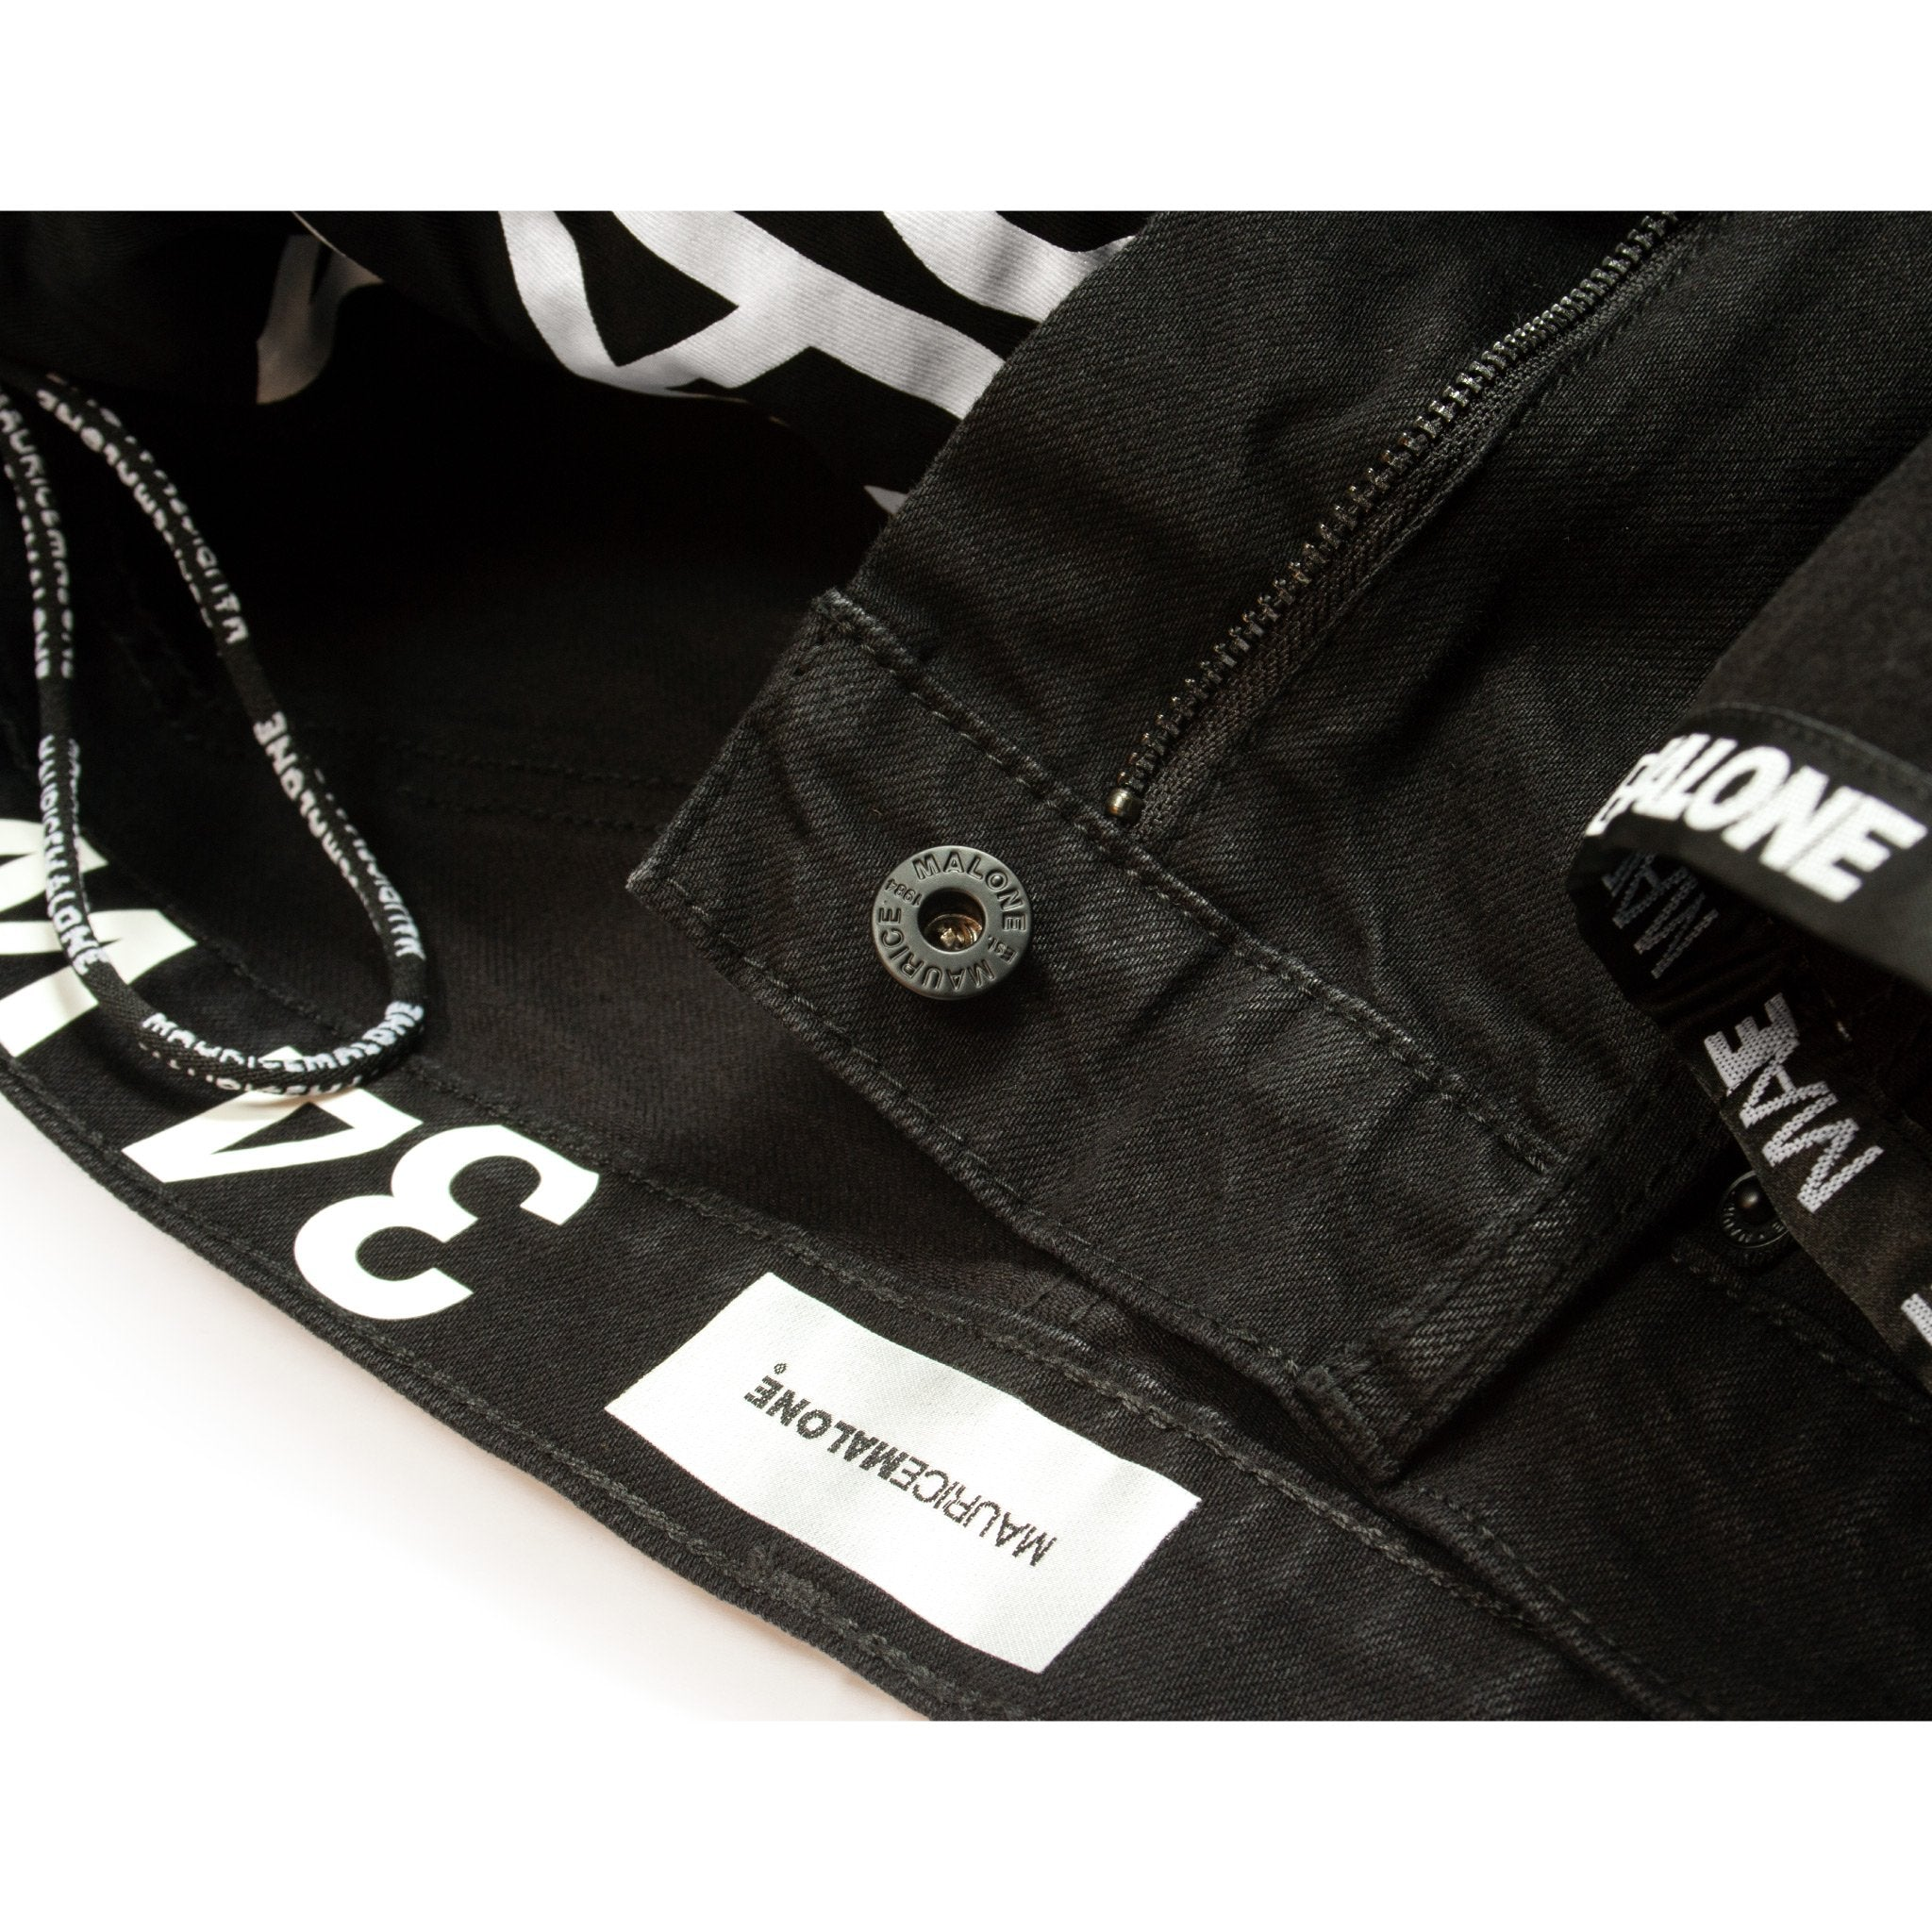 Inside jean details feature branded hanger loops, pocket bags and soft heat applied satin waistband label.